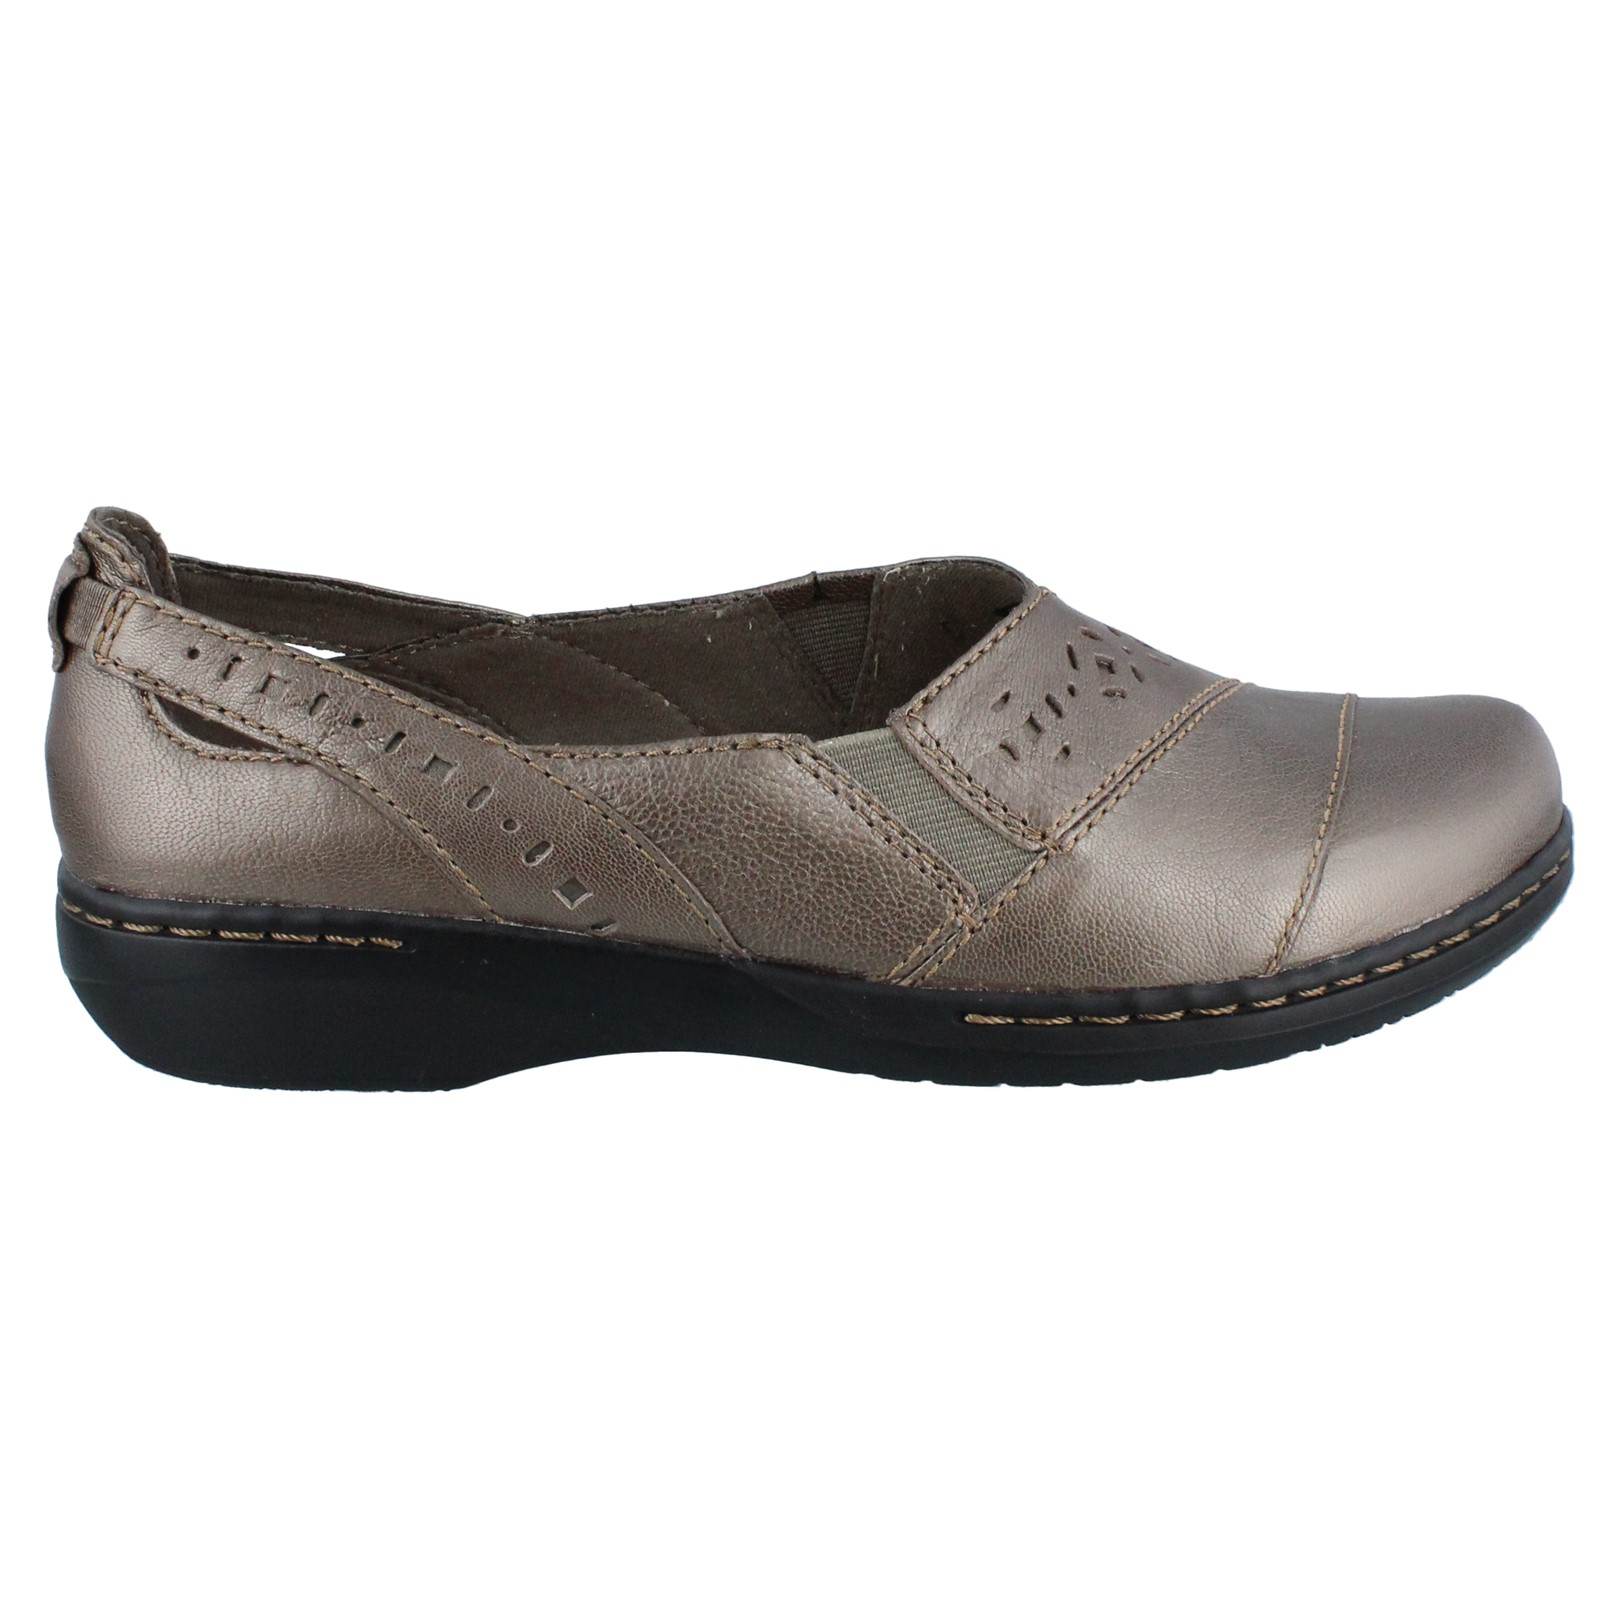 Women's Clarks, Evianna Fig4 Slip on Shoes